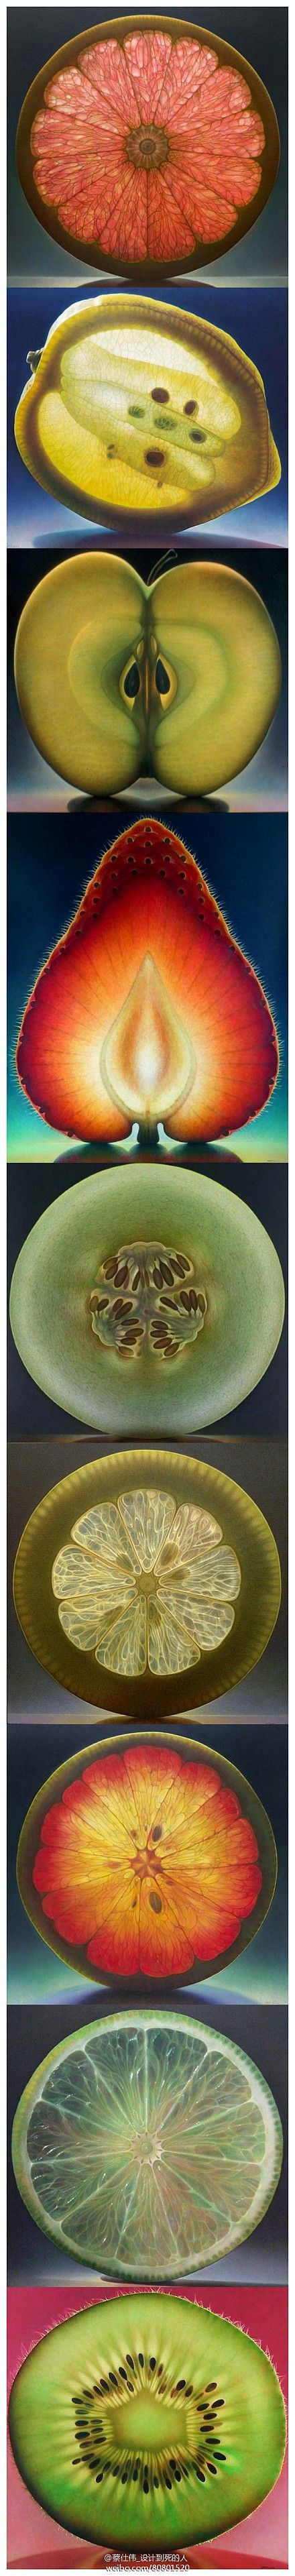 fruits in cross-sections - use chrome browser to translate the Portuguese amazing images site